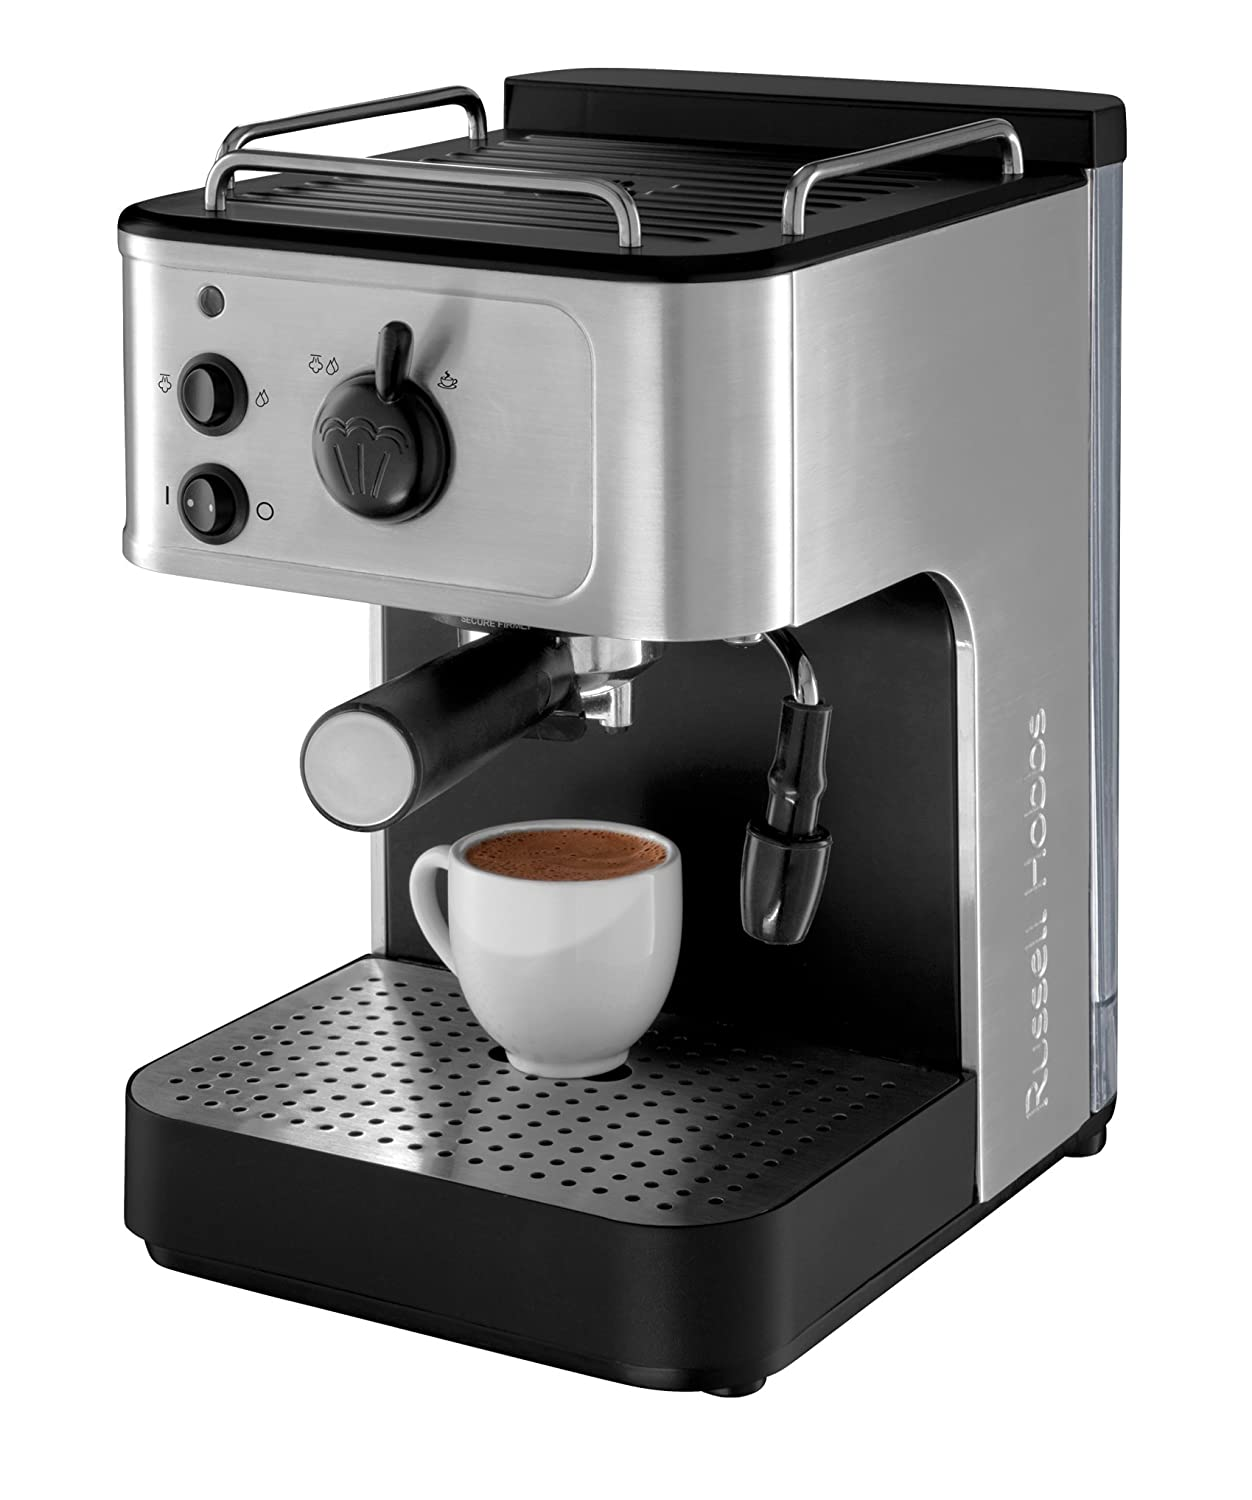 russell hobbs 18623 espresso coffee maker espresso cappuccino machines kitchen ebay. Black Bedroom Furniture Sets. Home Design Ideas